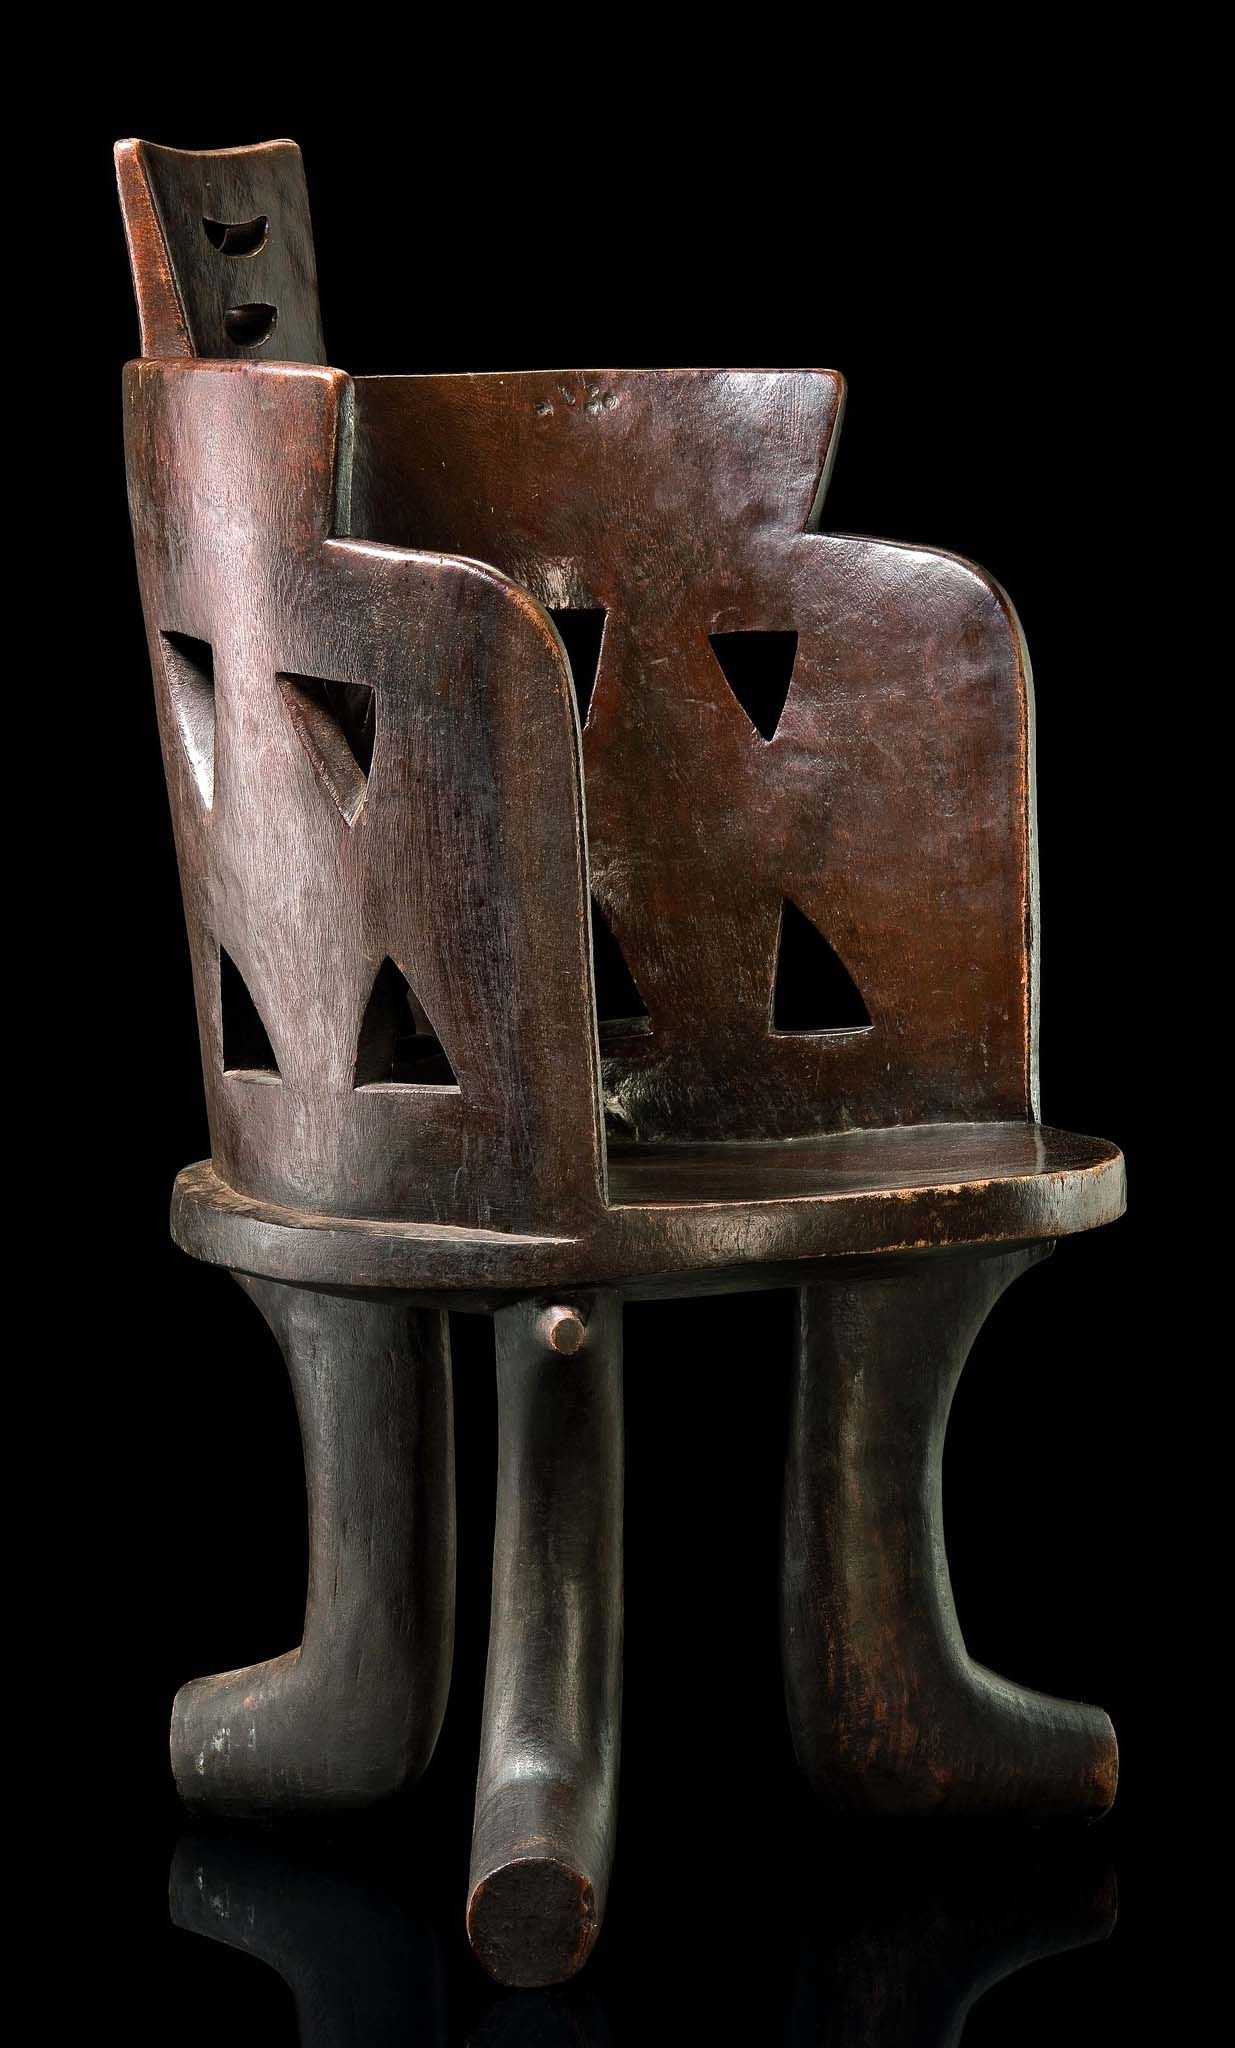 Africa chairstool from the gurage people of ethiopia wood